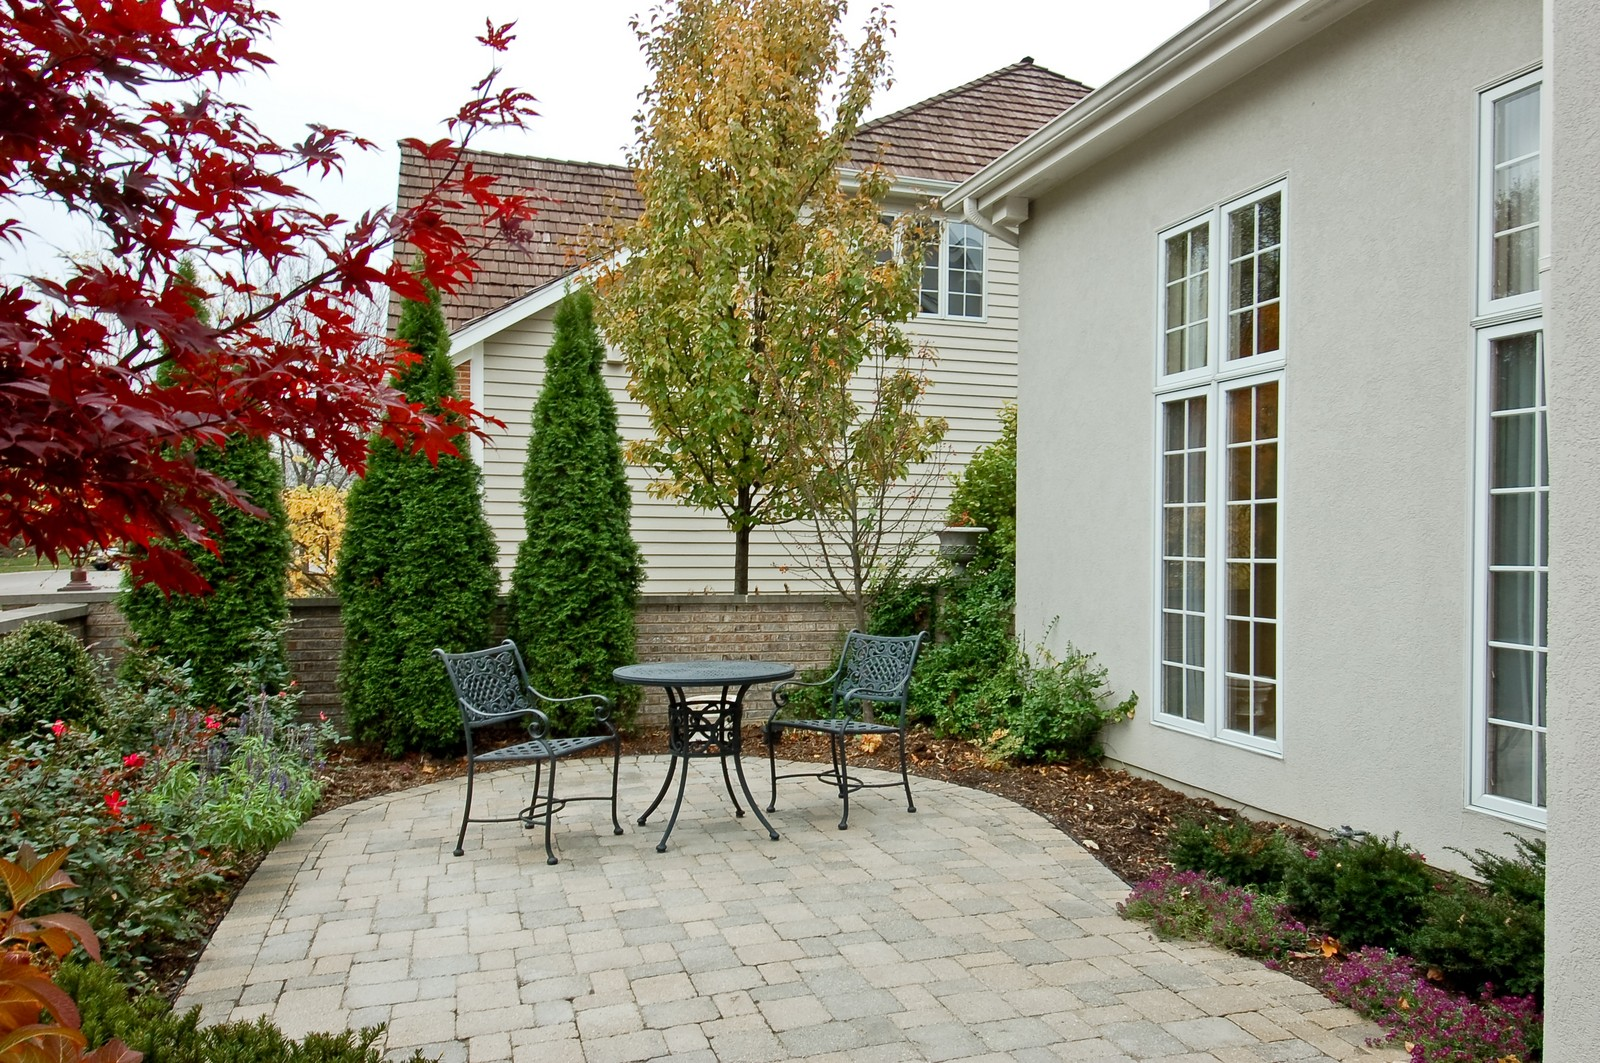 Real Estate Photography - 1492 Lloyd, Wheaton, IL, 60189 - Front Courtyard